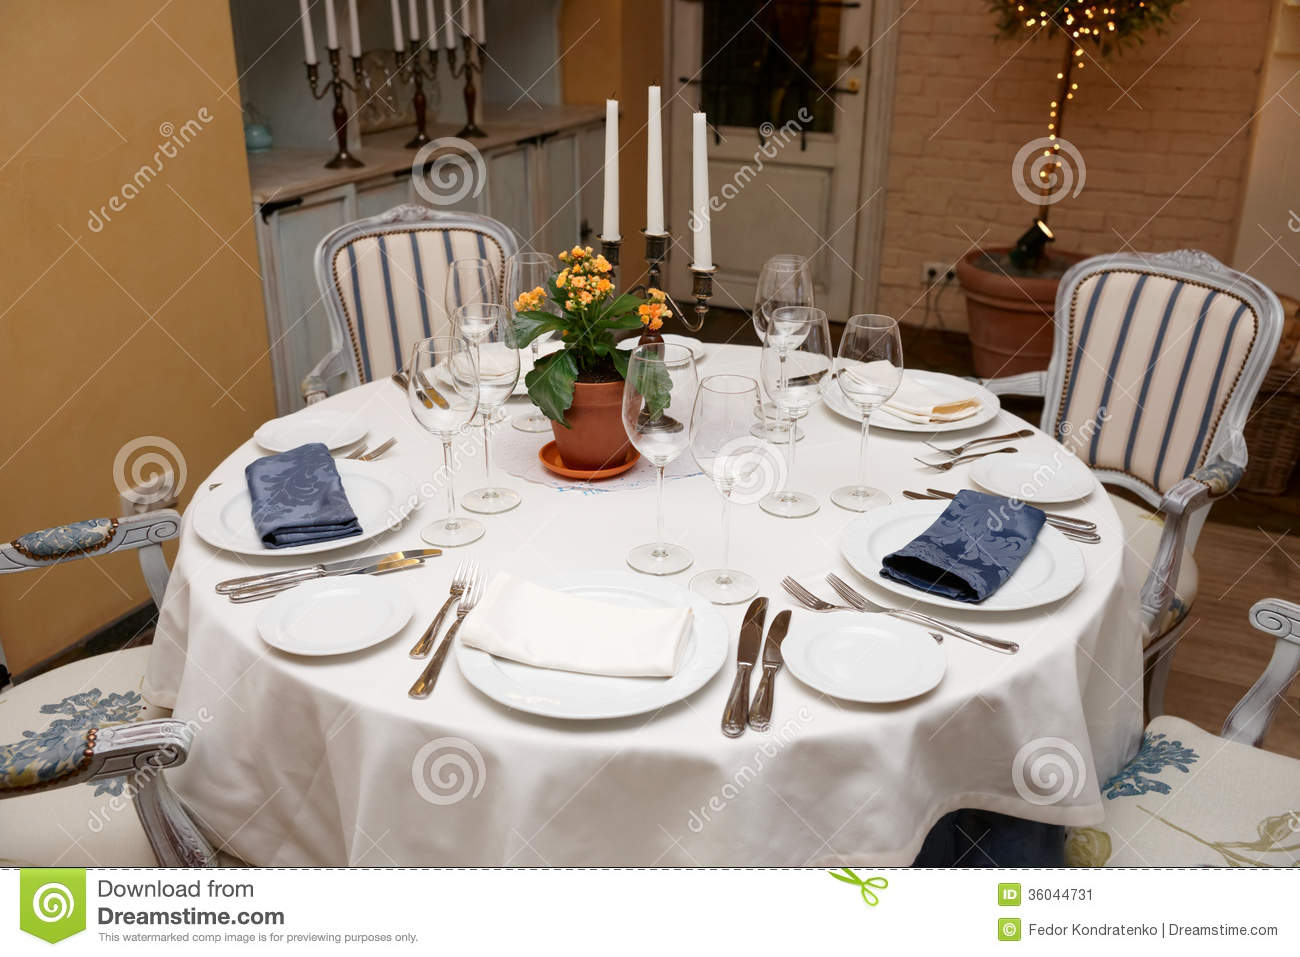 Restaurant table setting ideas - Table Setting In A Restaurant